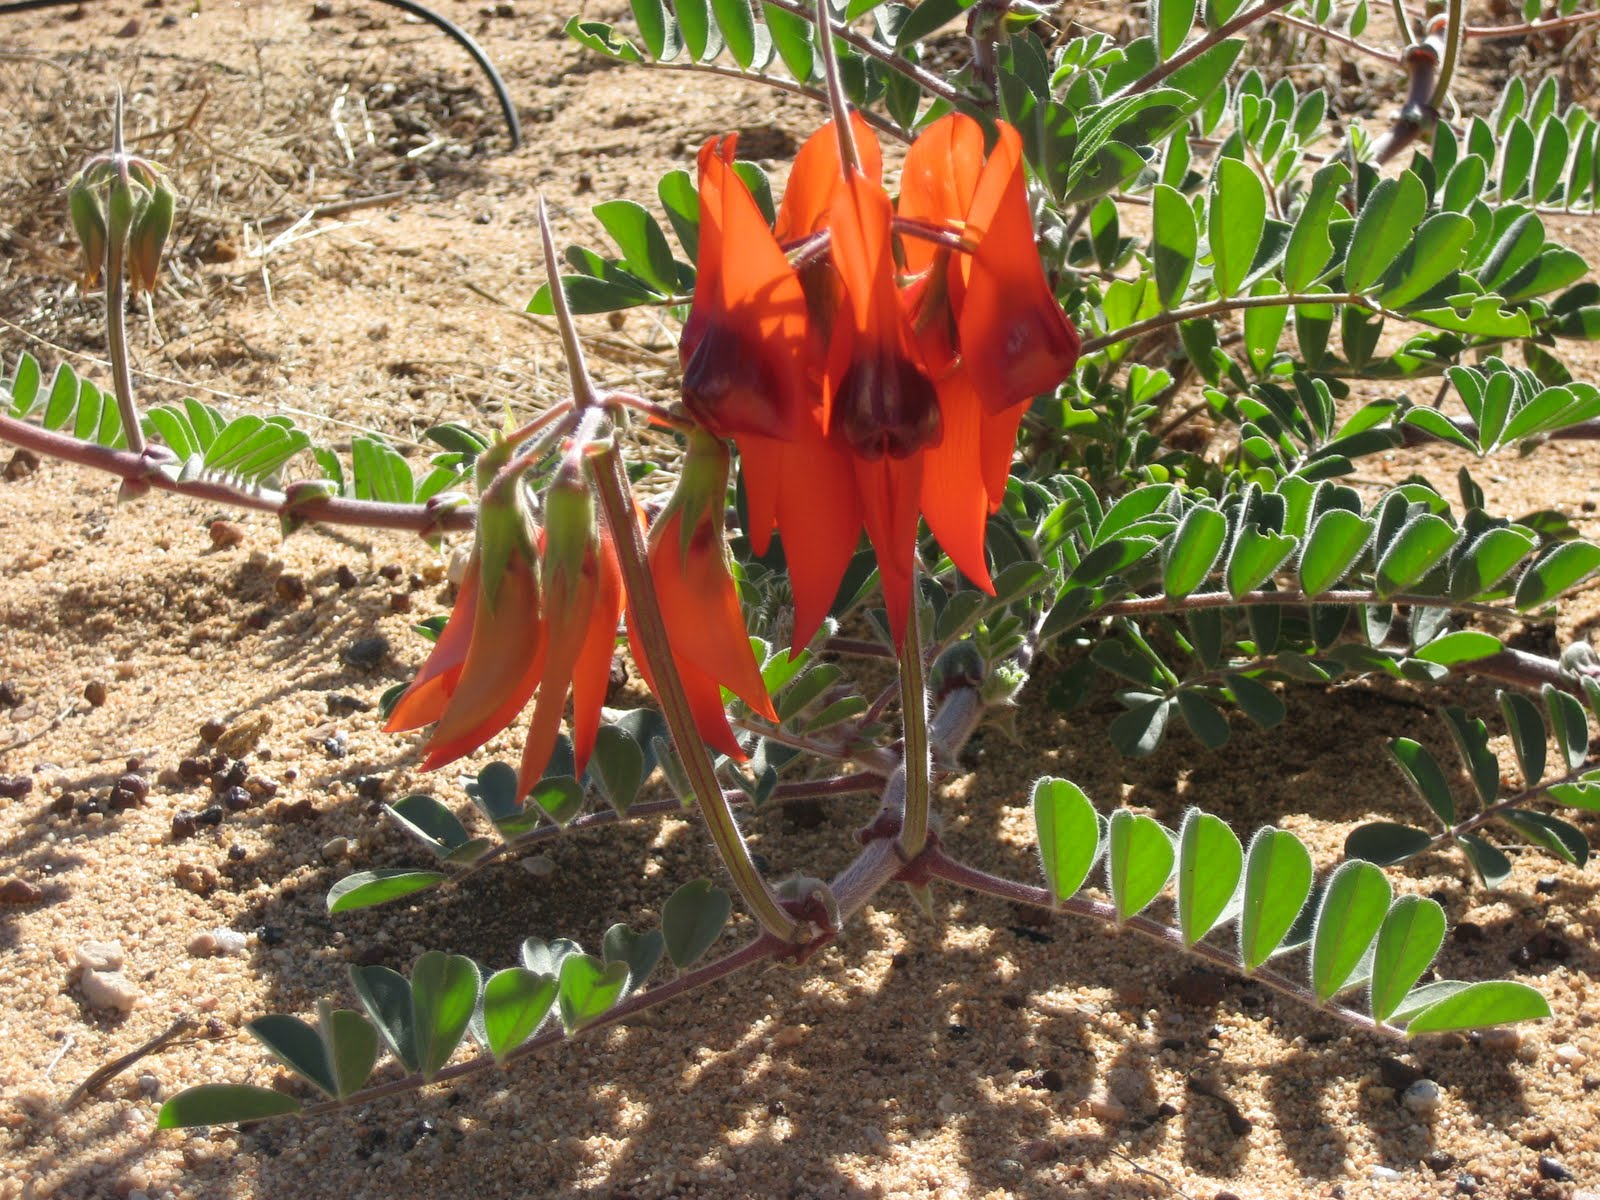 Marcelle nankervis aussie native sturts desert pea on a recent trip to alice springs i was happily reminded of this unusual native annual or short lived perennial as it was mass planted in the garden beds mightylinksfo